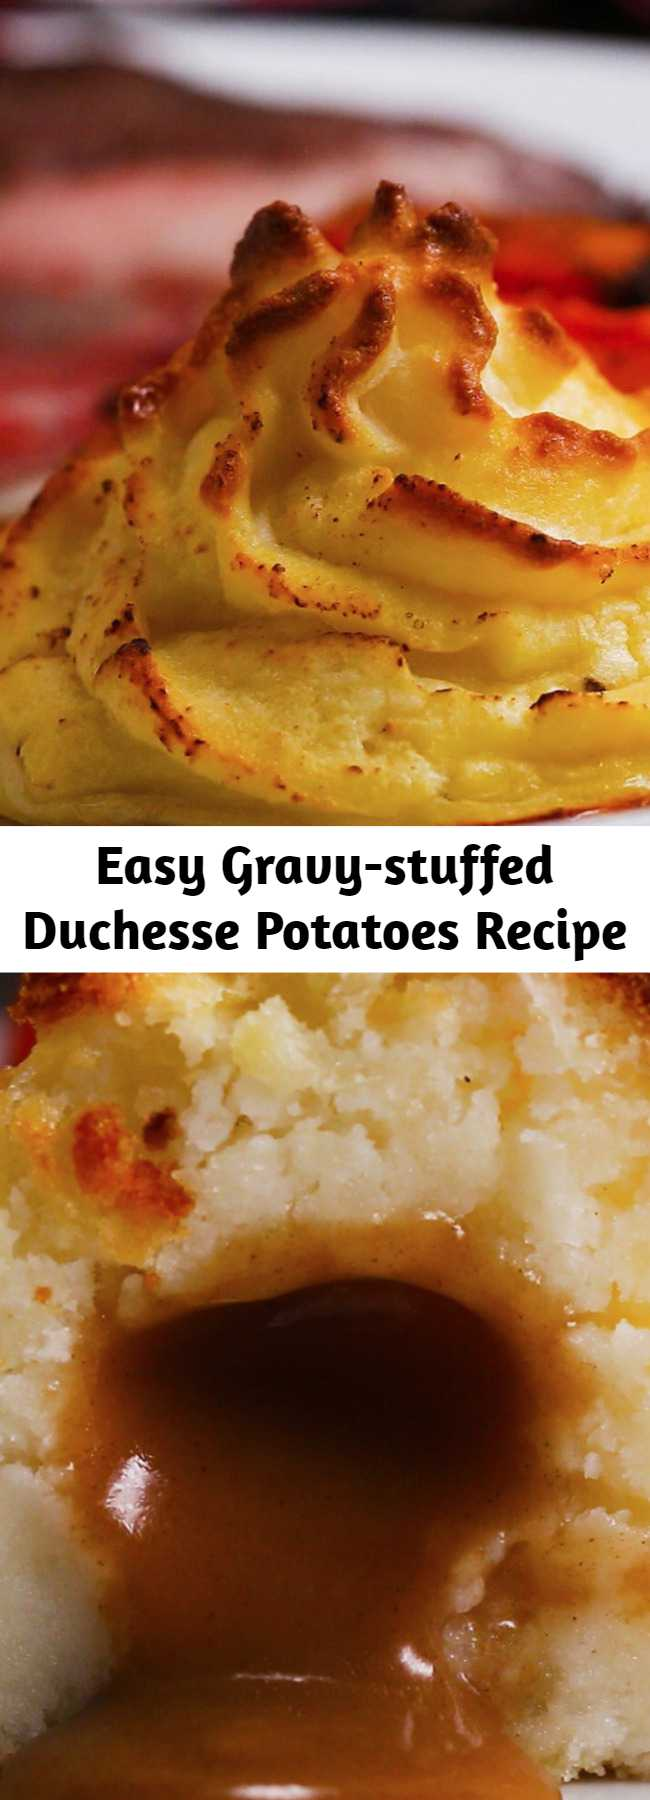 Easy Gravy-stuffed Duchesse Potatoes Recipe - Classic Duchess potatoes, mashed with butter, nutmeg and cream, then baked until the tops are golden brown.